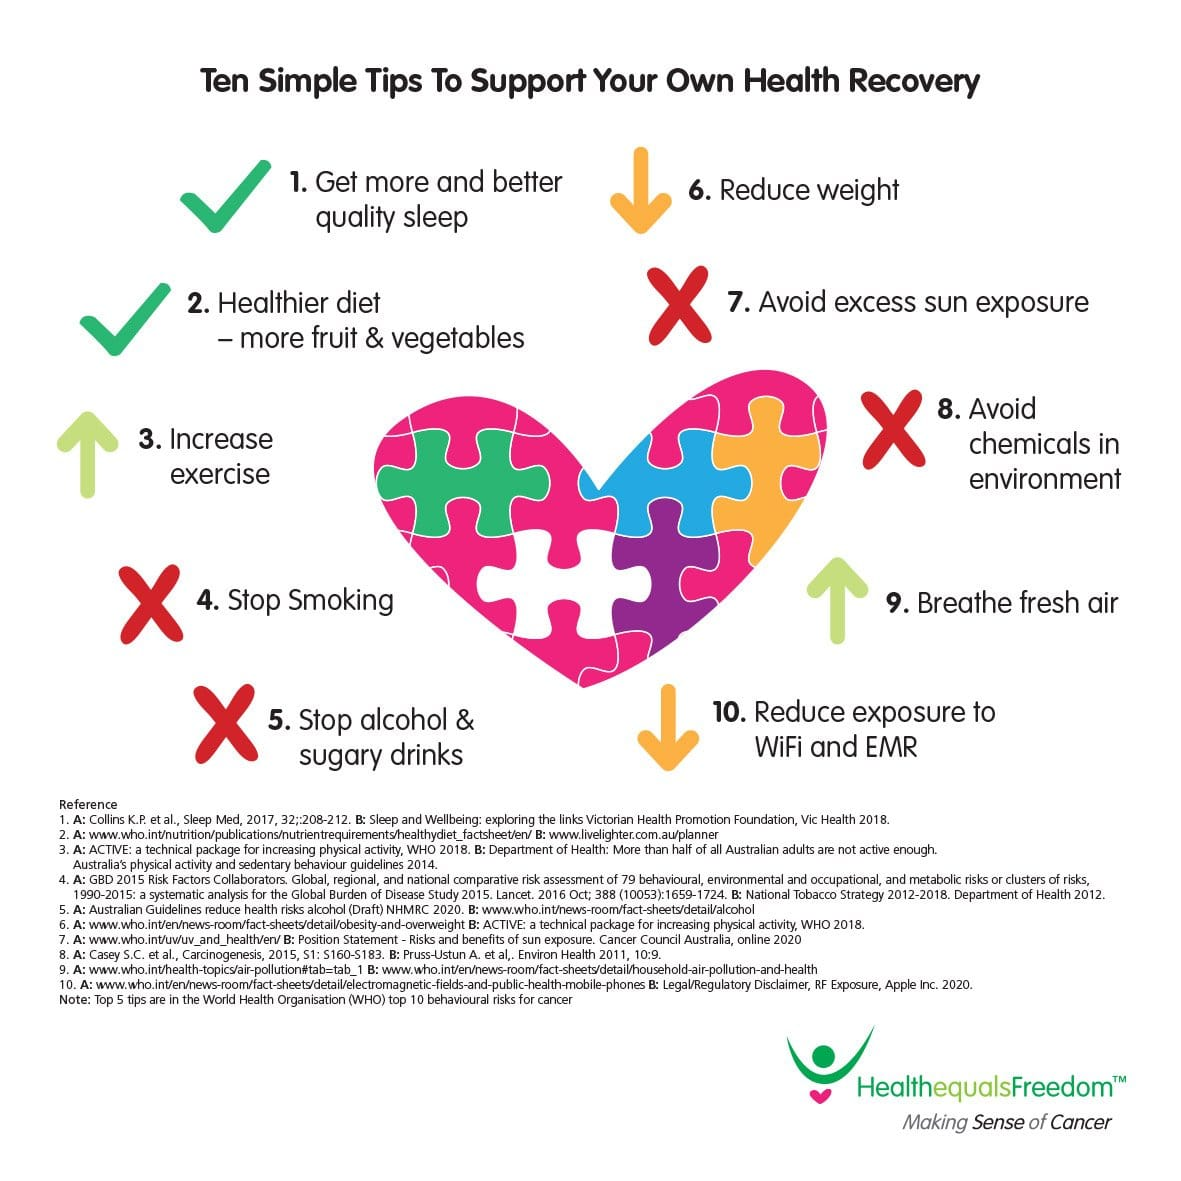 Ten Simple Tips To Support Your Own Health Recovery